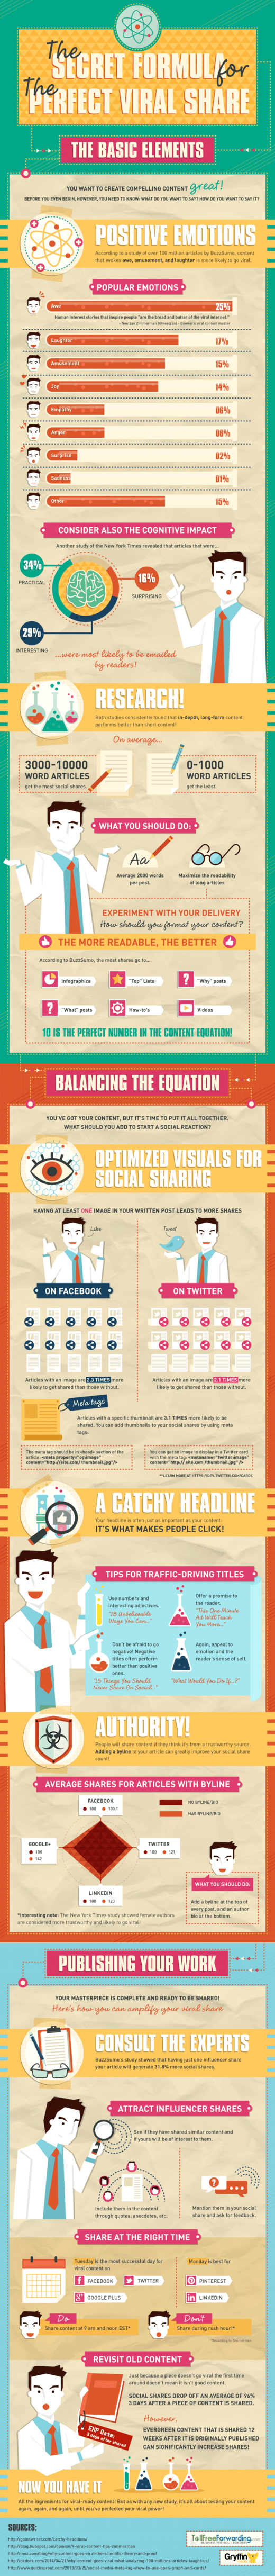 creating viral content